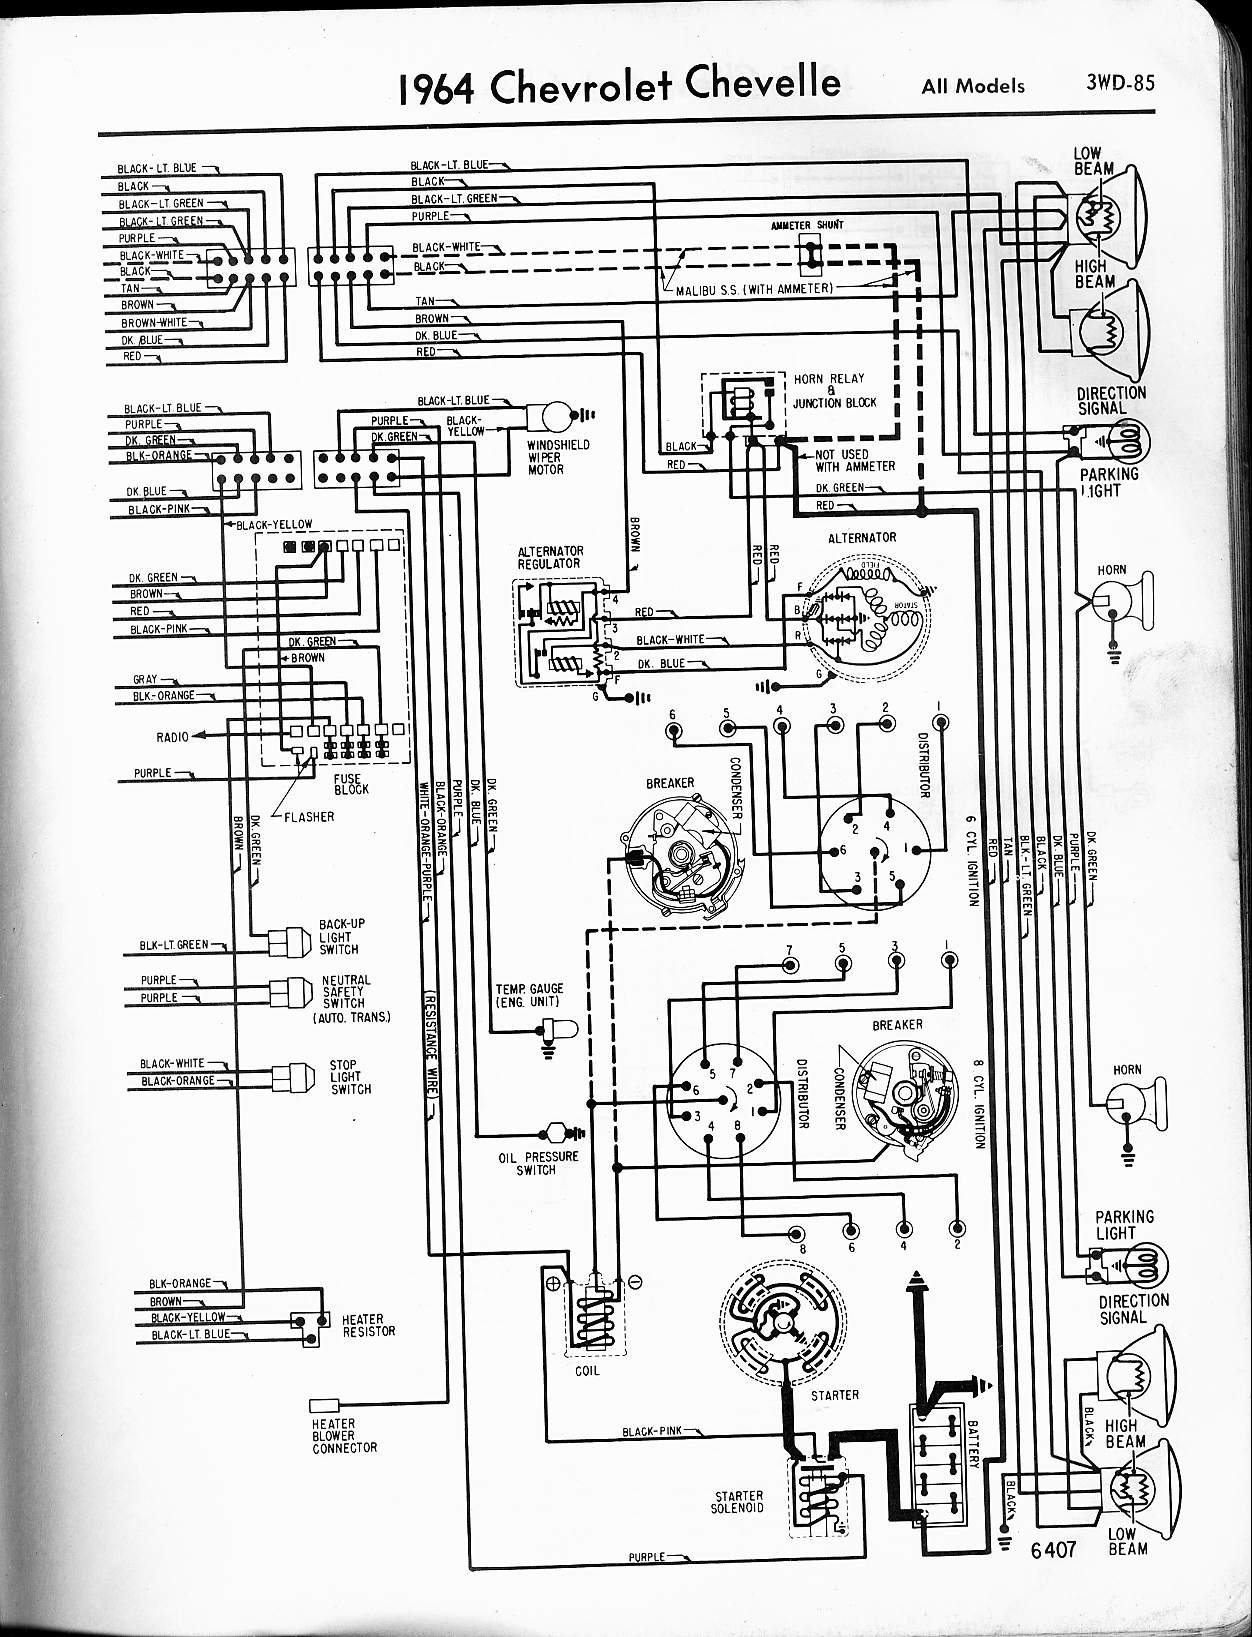 Ignition Coil Wiring Diagram 65 Chevelle Opinions About Wiring 2001 Chevy  Truck Wiring Diagram 1968 Impala Wiring Diagram Lights